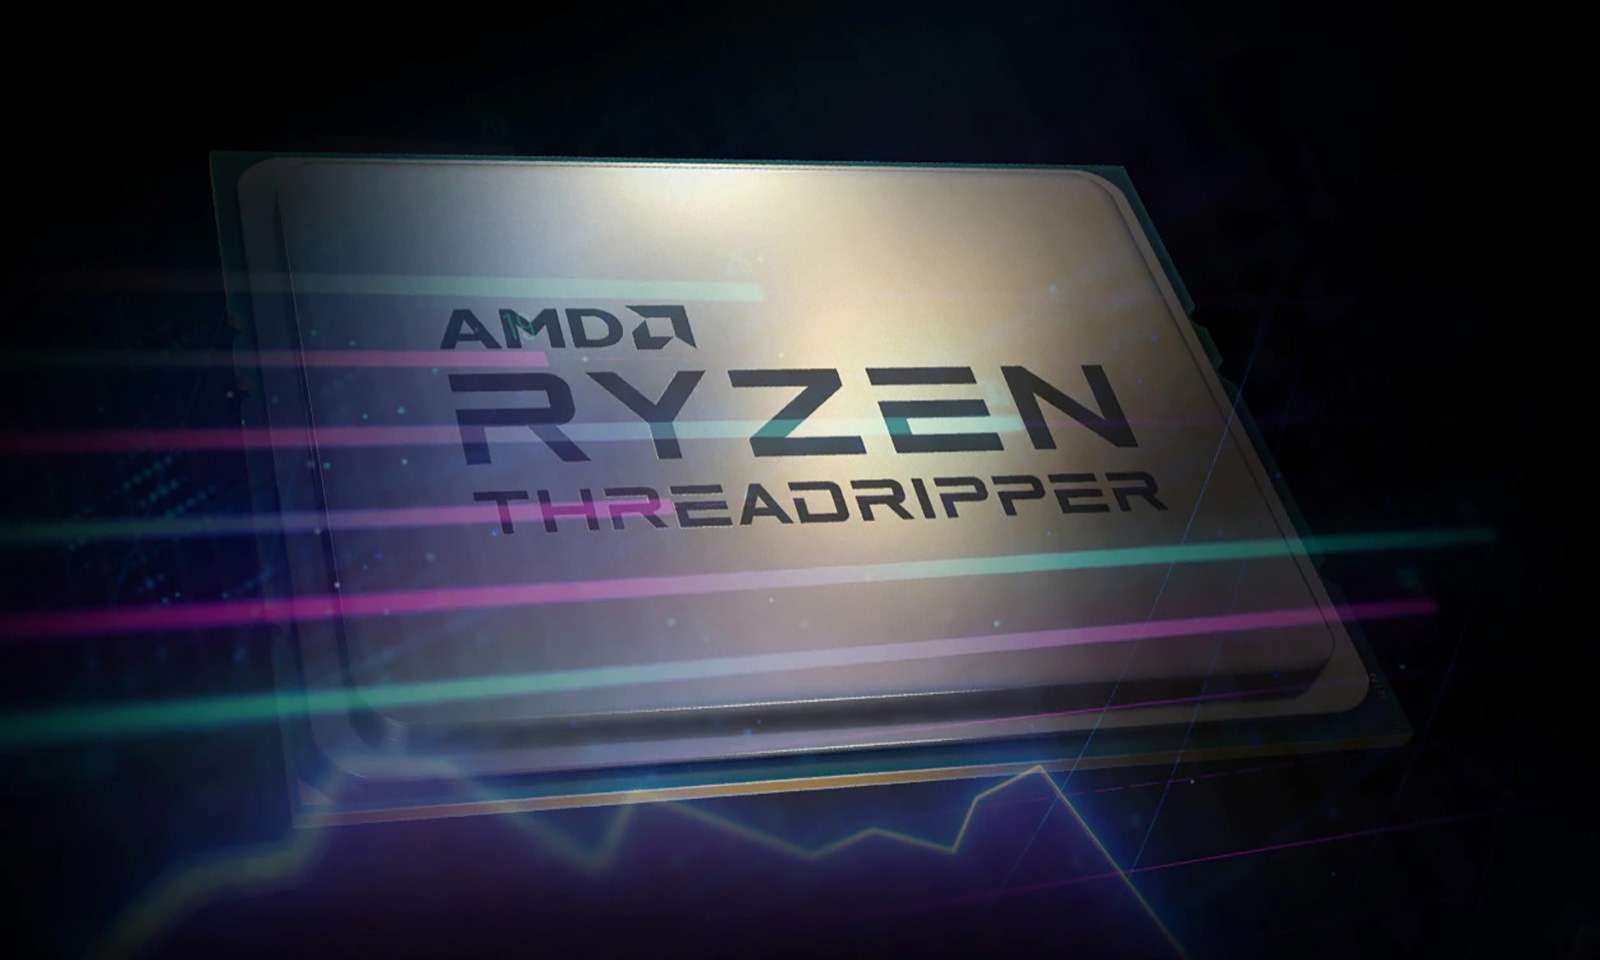 AMD Ryzen Threadripper